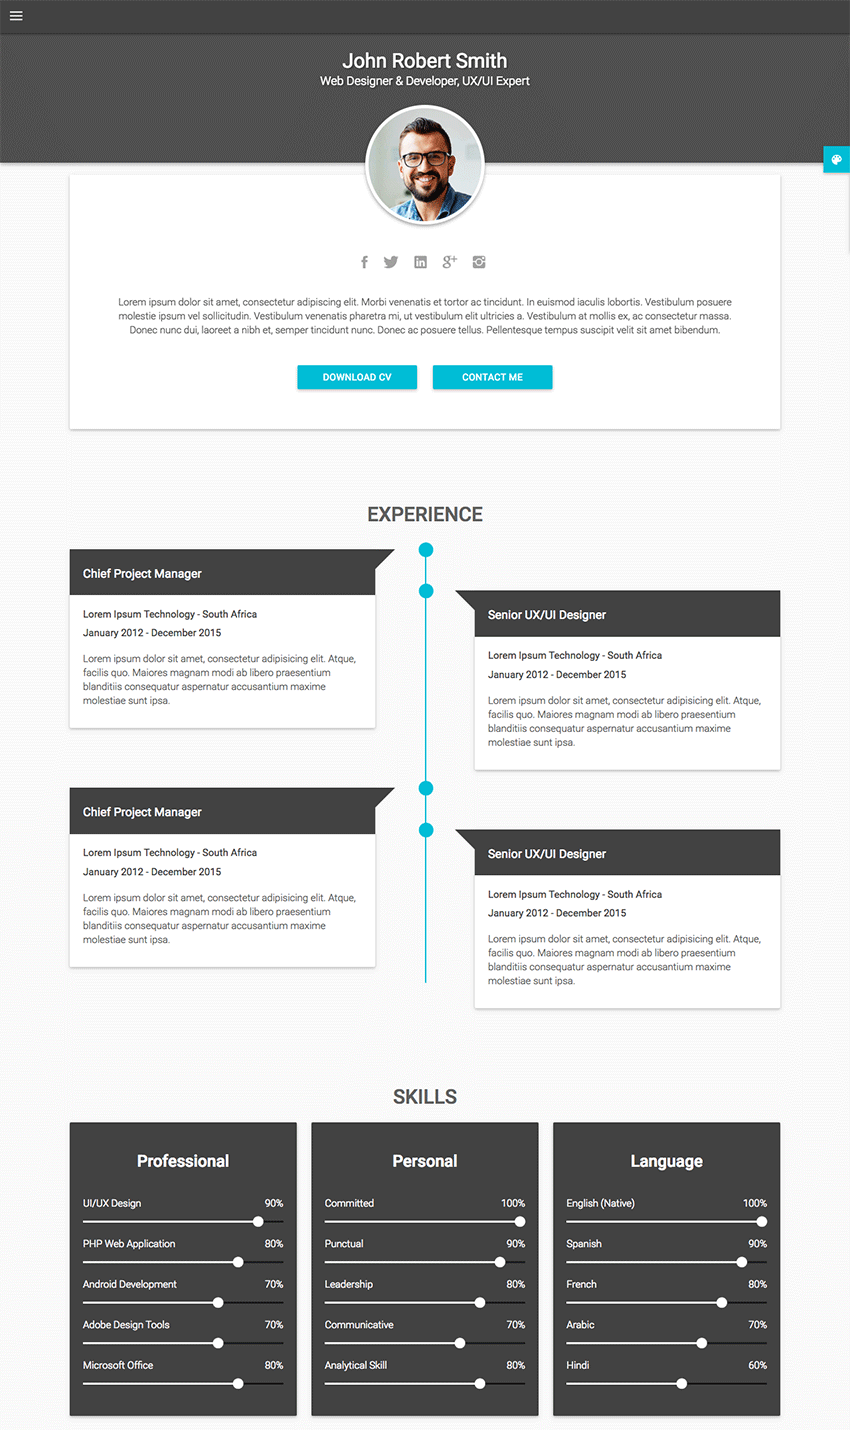 Resume Site resume template resume building website reviews resume website best free resume site Decent Material Cv Personal Resume Site Template